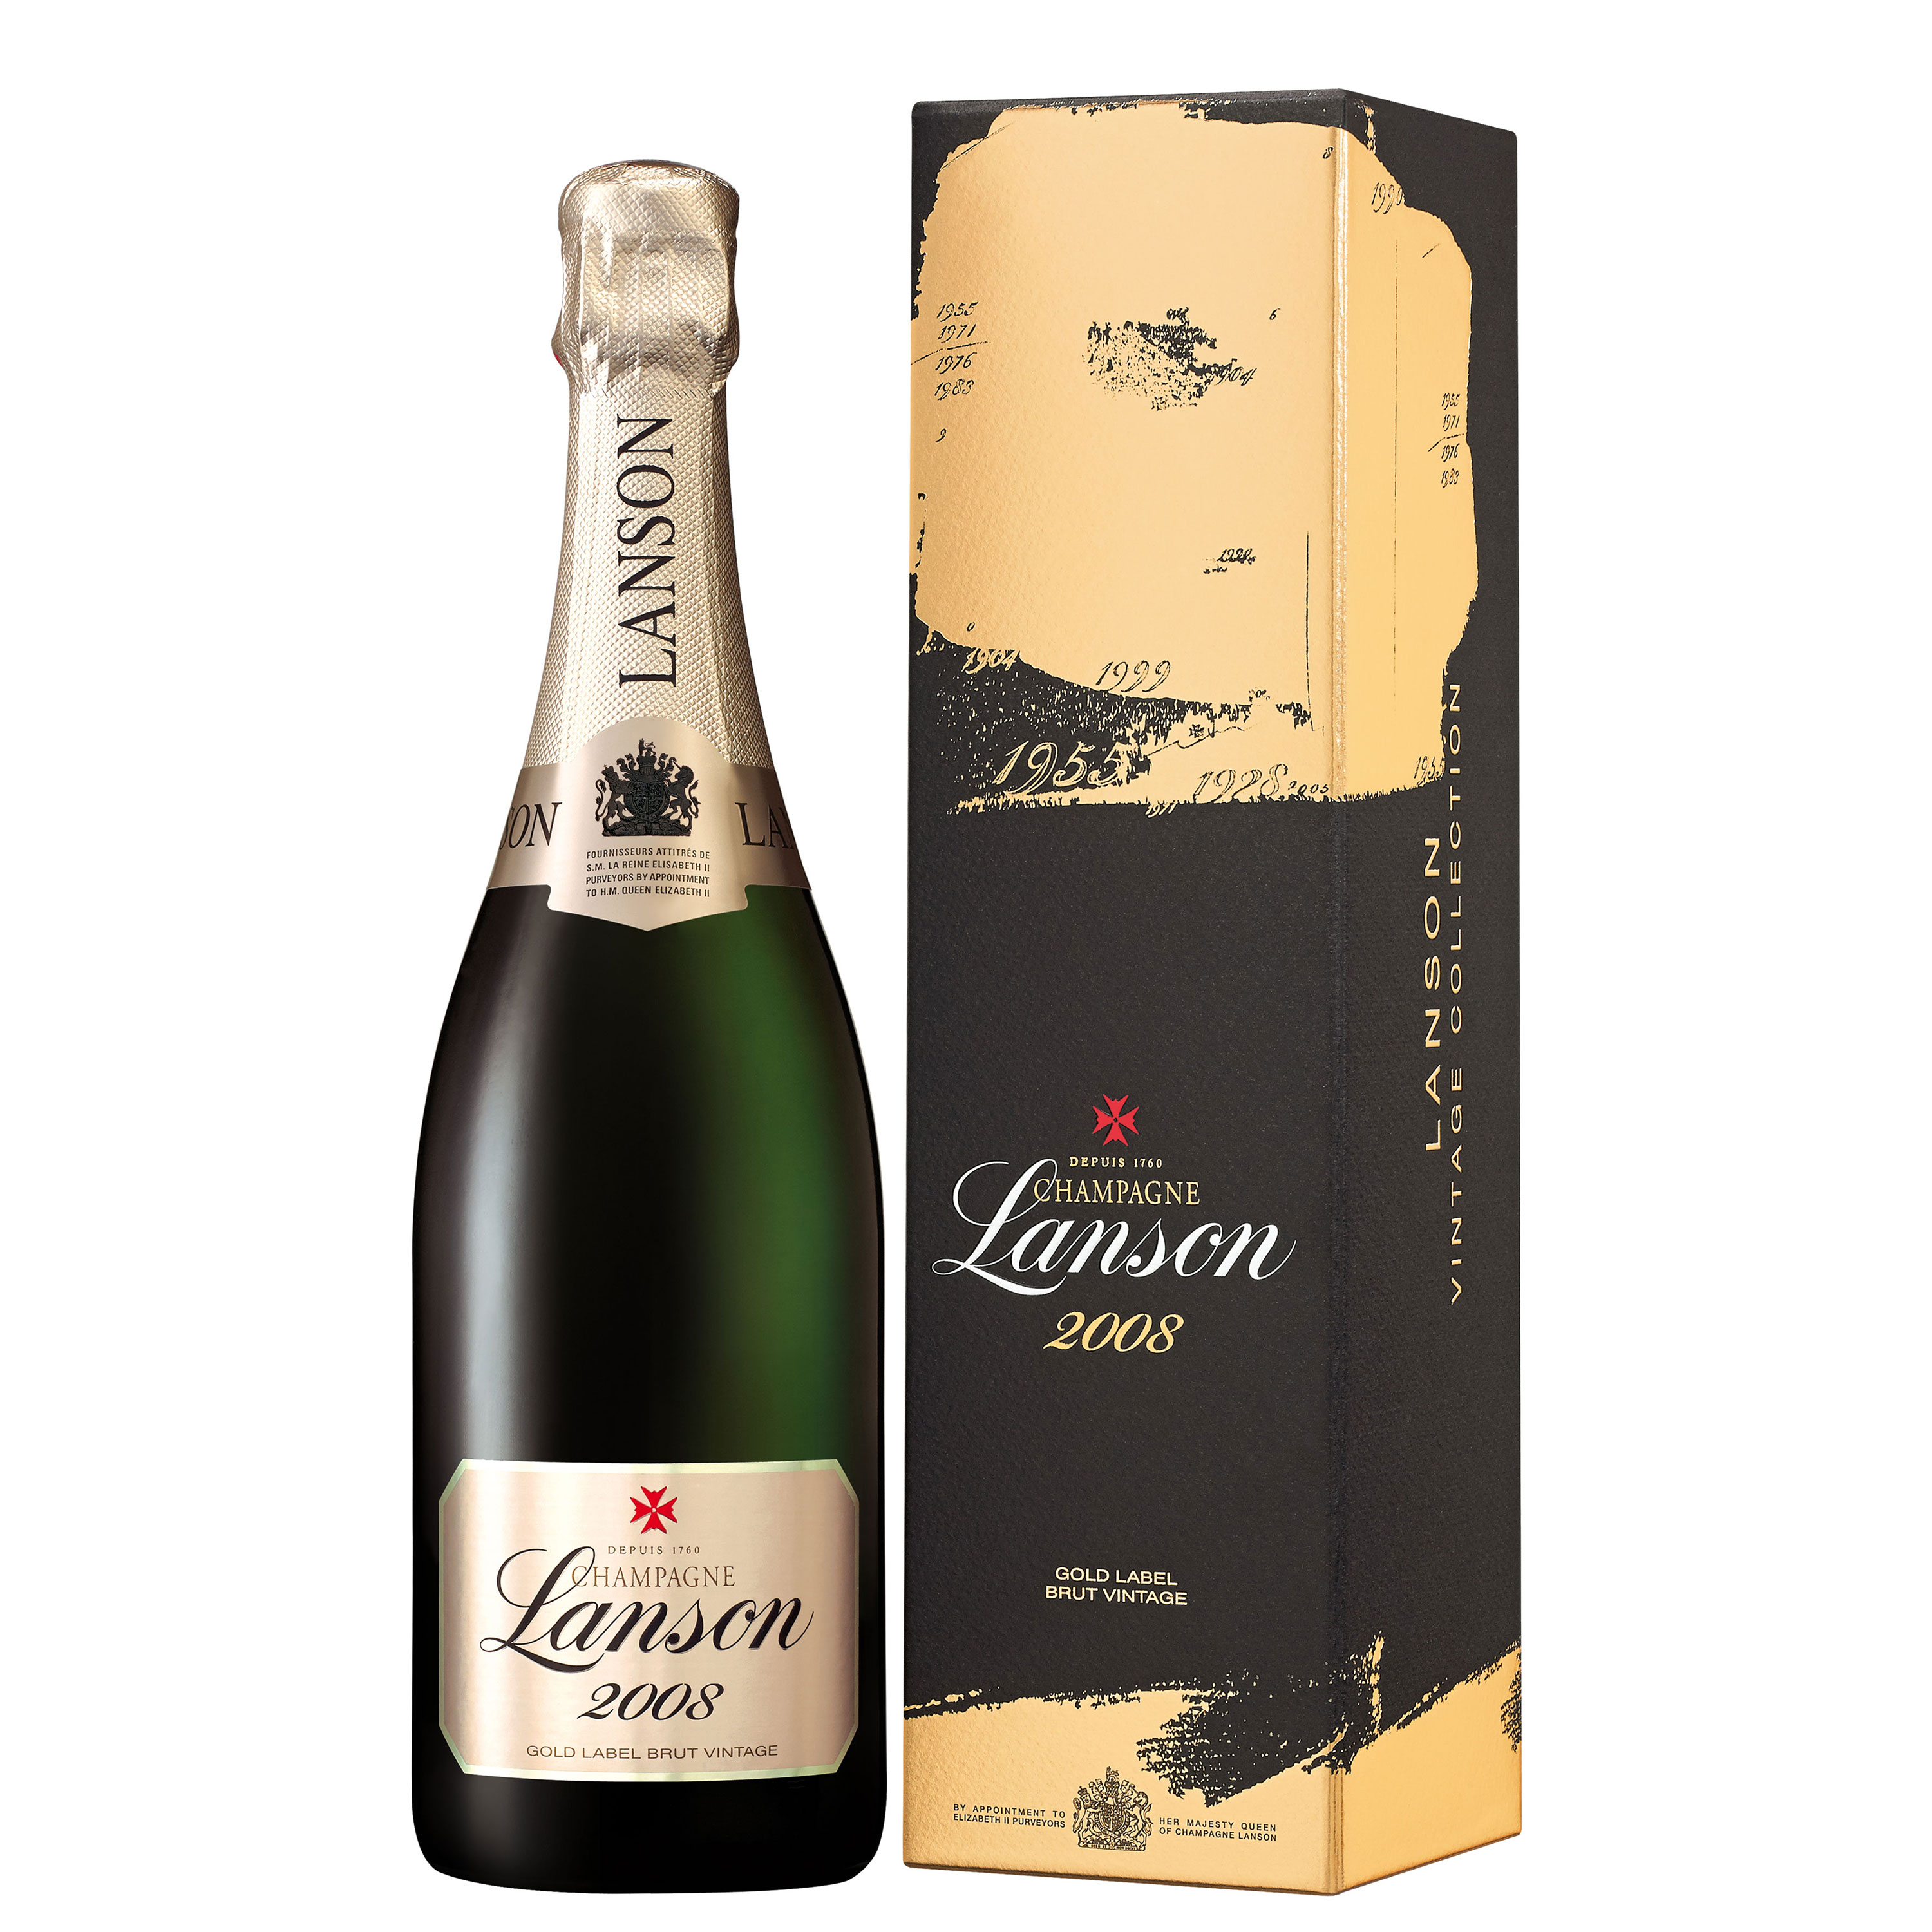 It's just an image of Sly Lanson Champagne Gold Label 2005